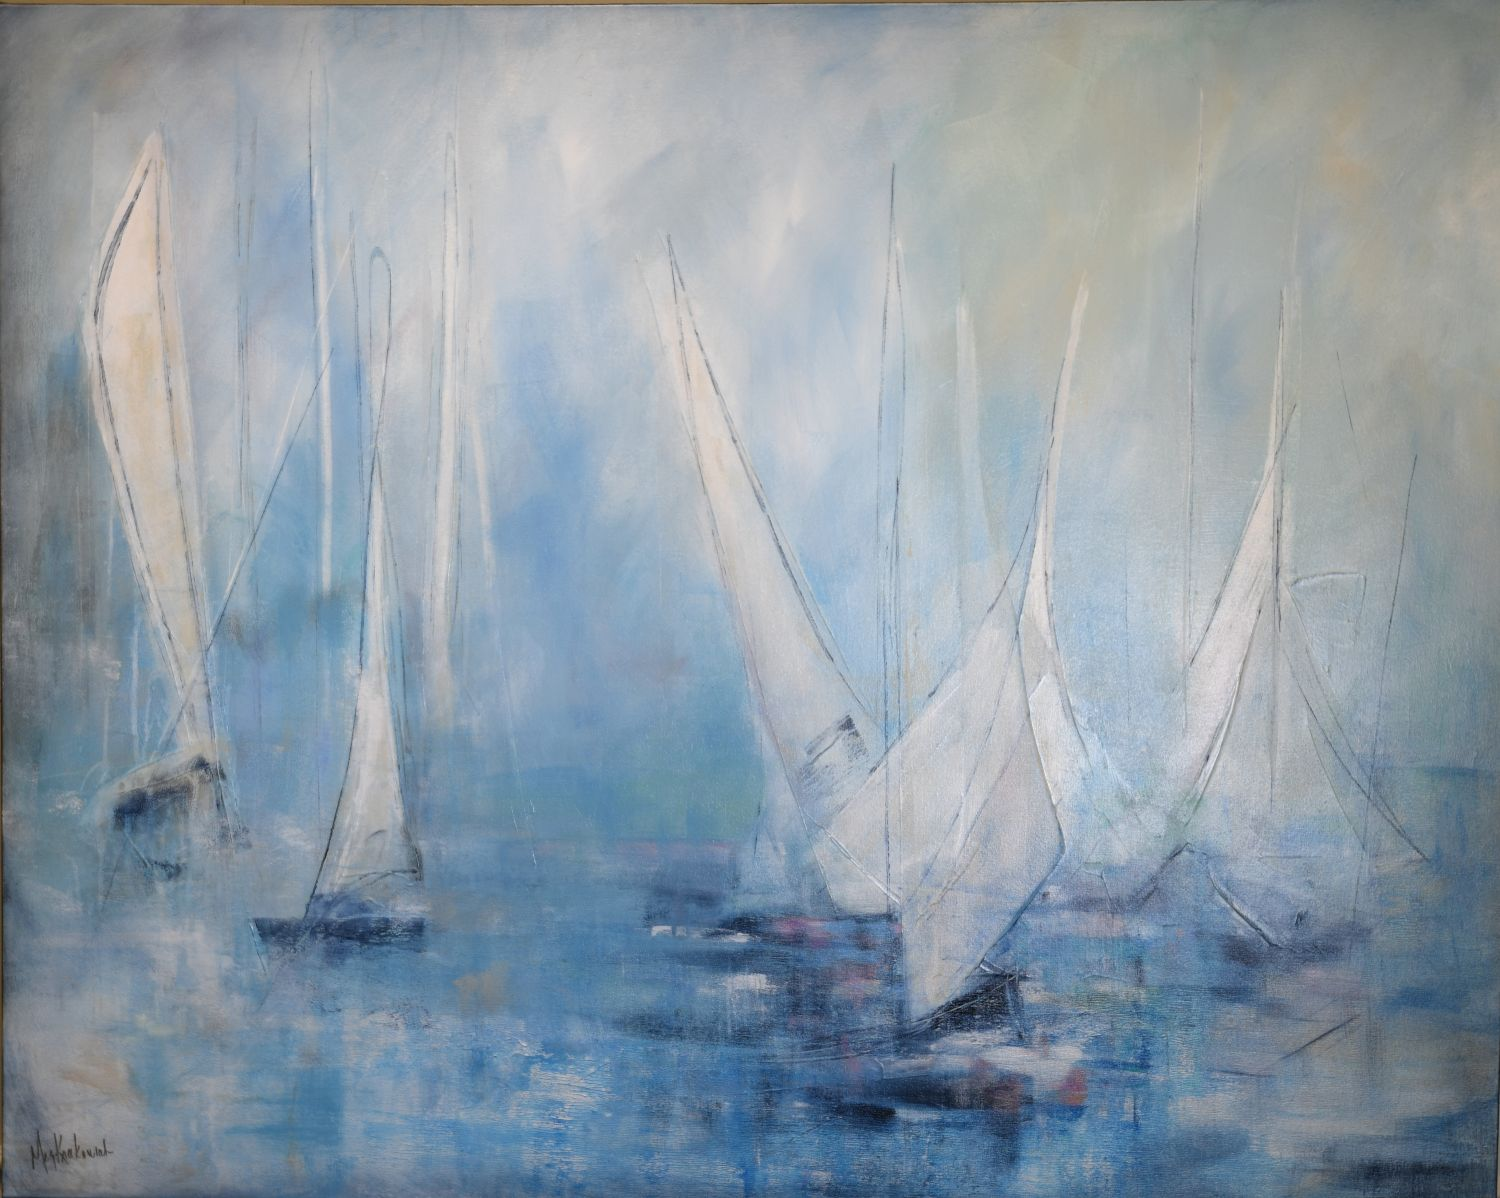 Blooming Sails: 60x48